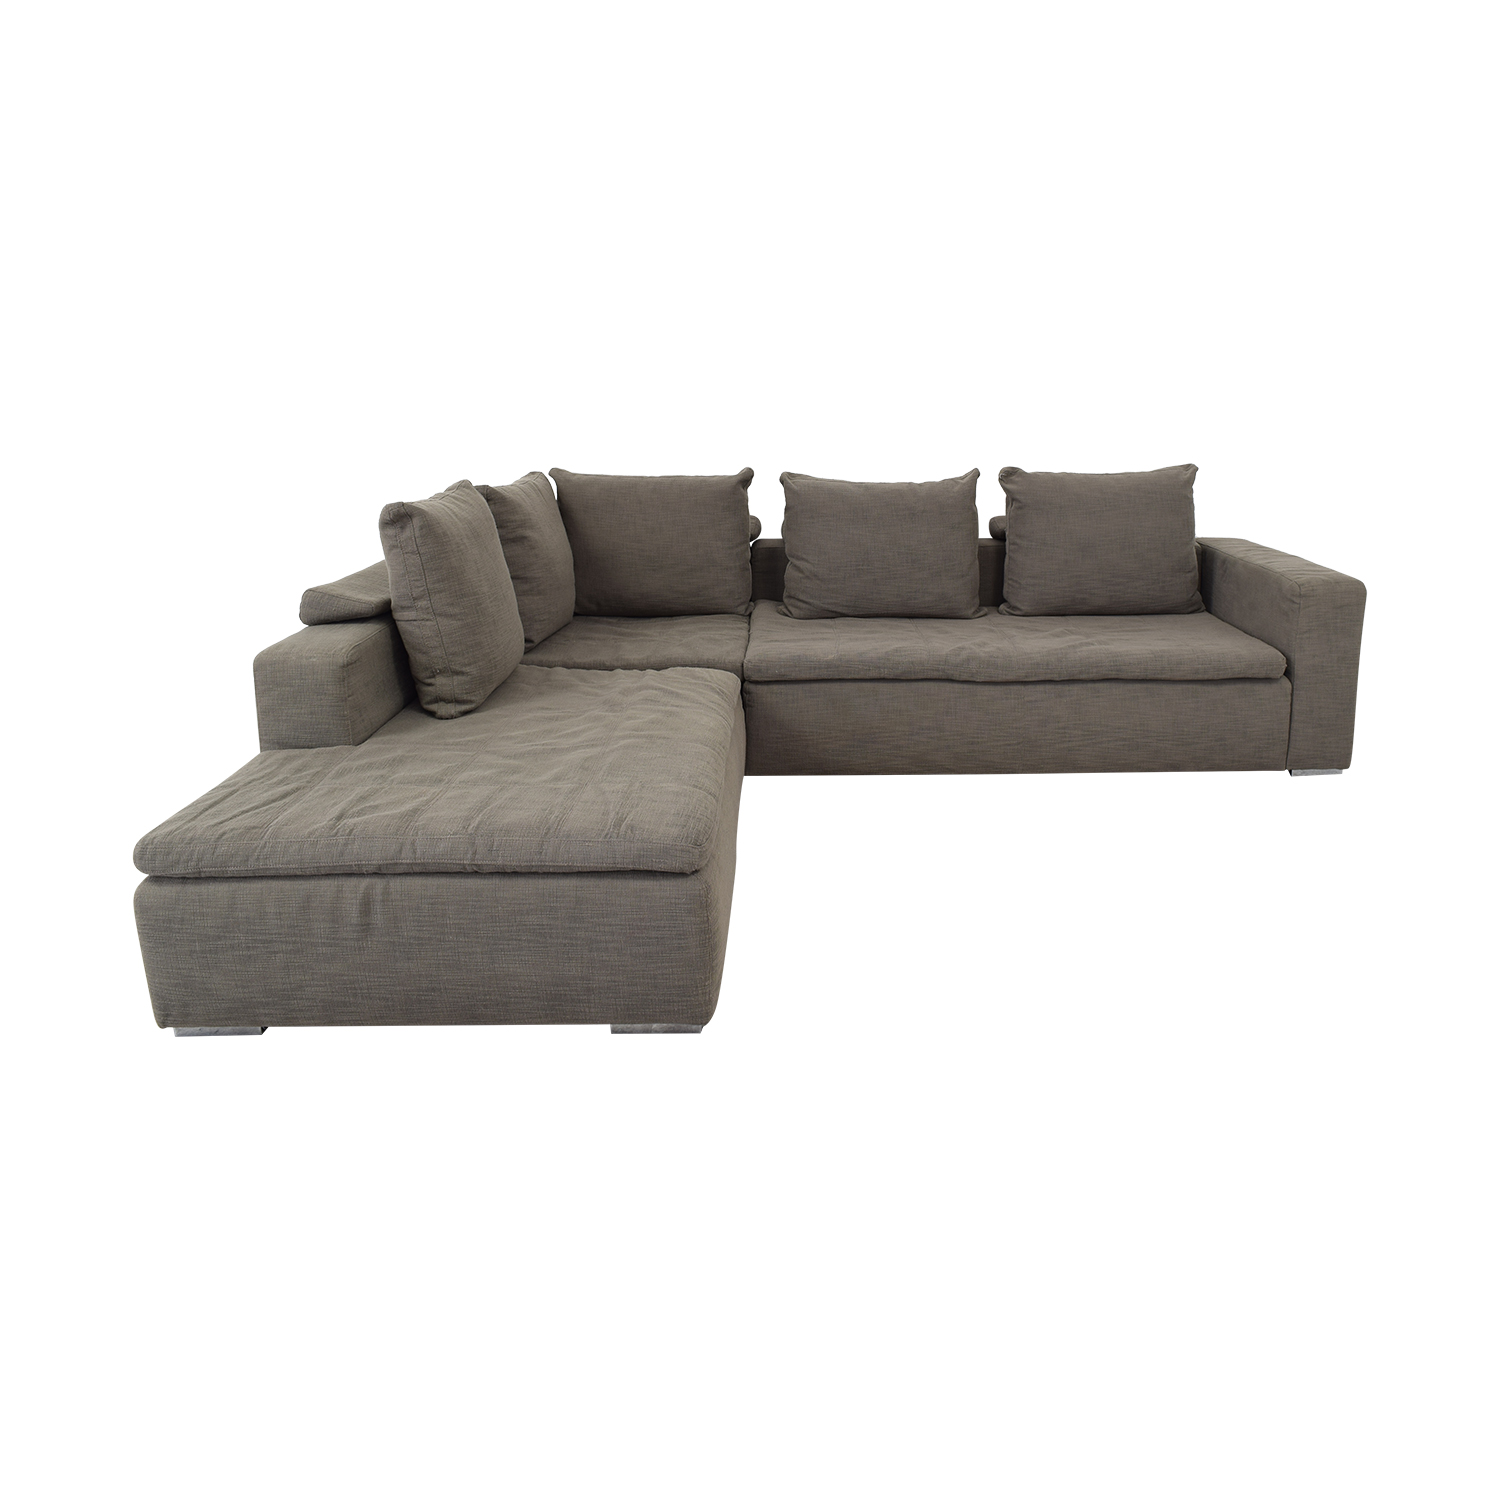 82% OFF - BoConcept BoConcept Gray L-Shaped Sectional / Sofas